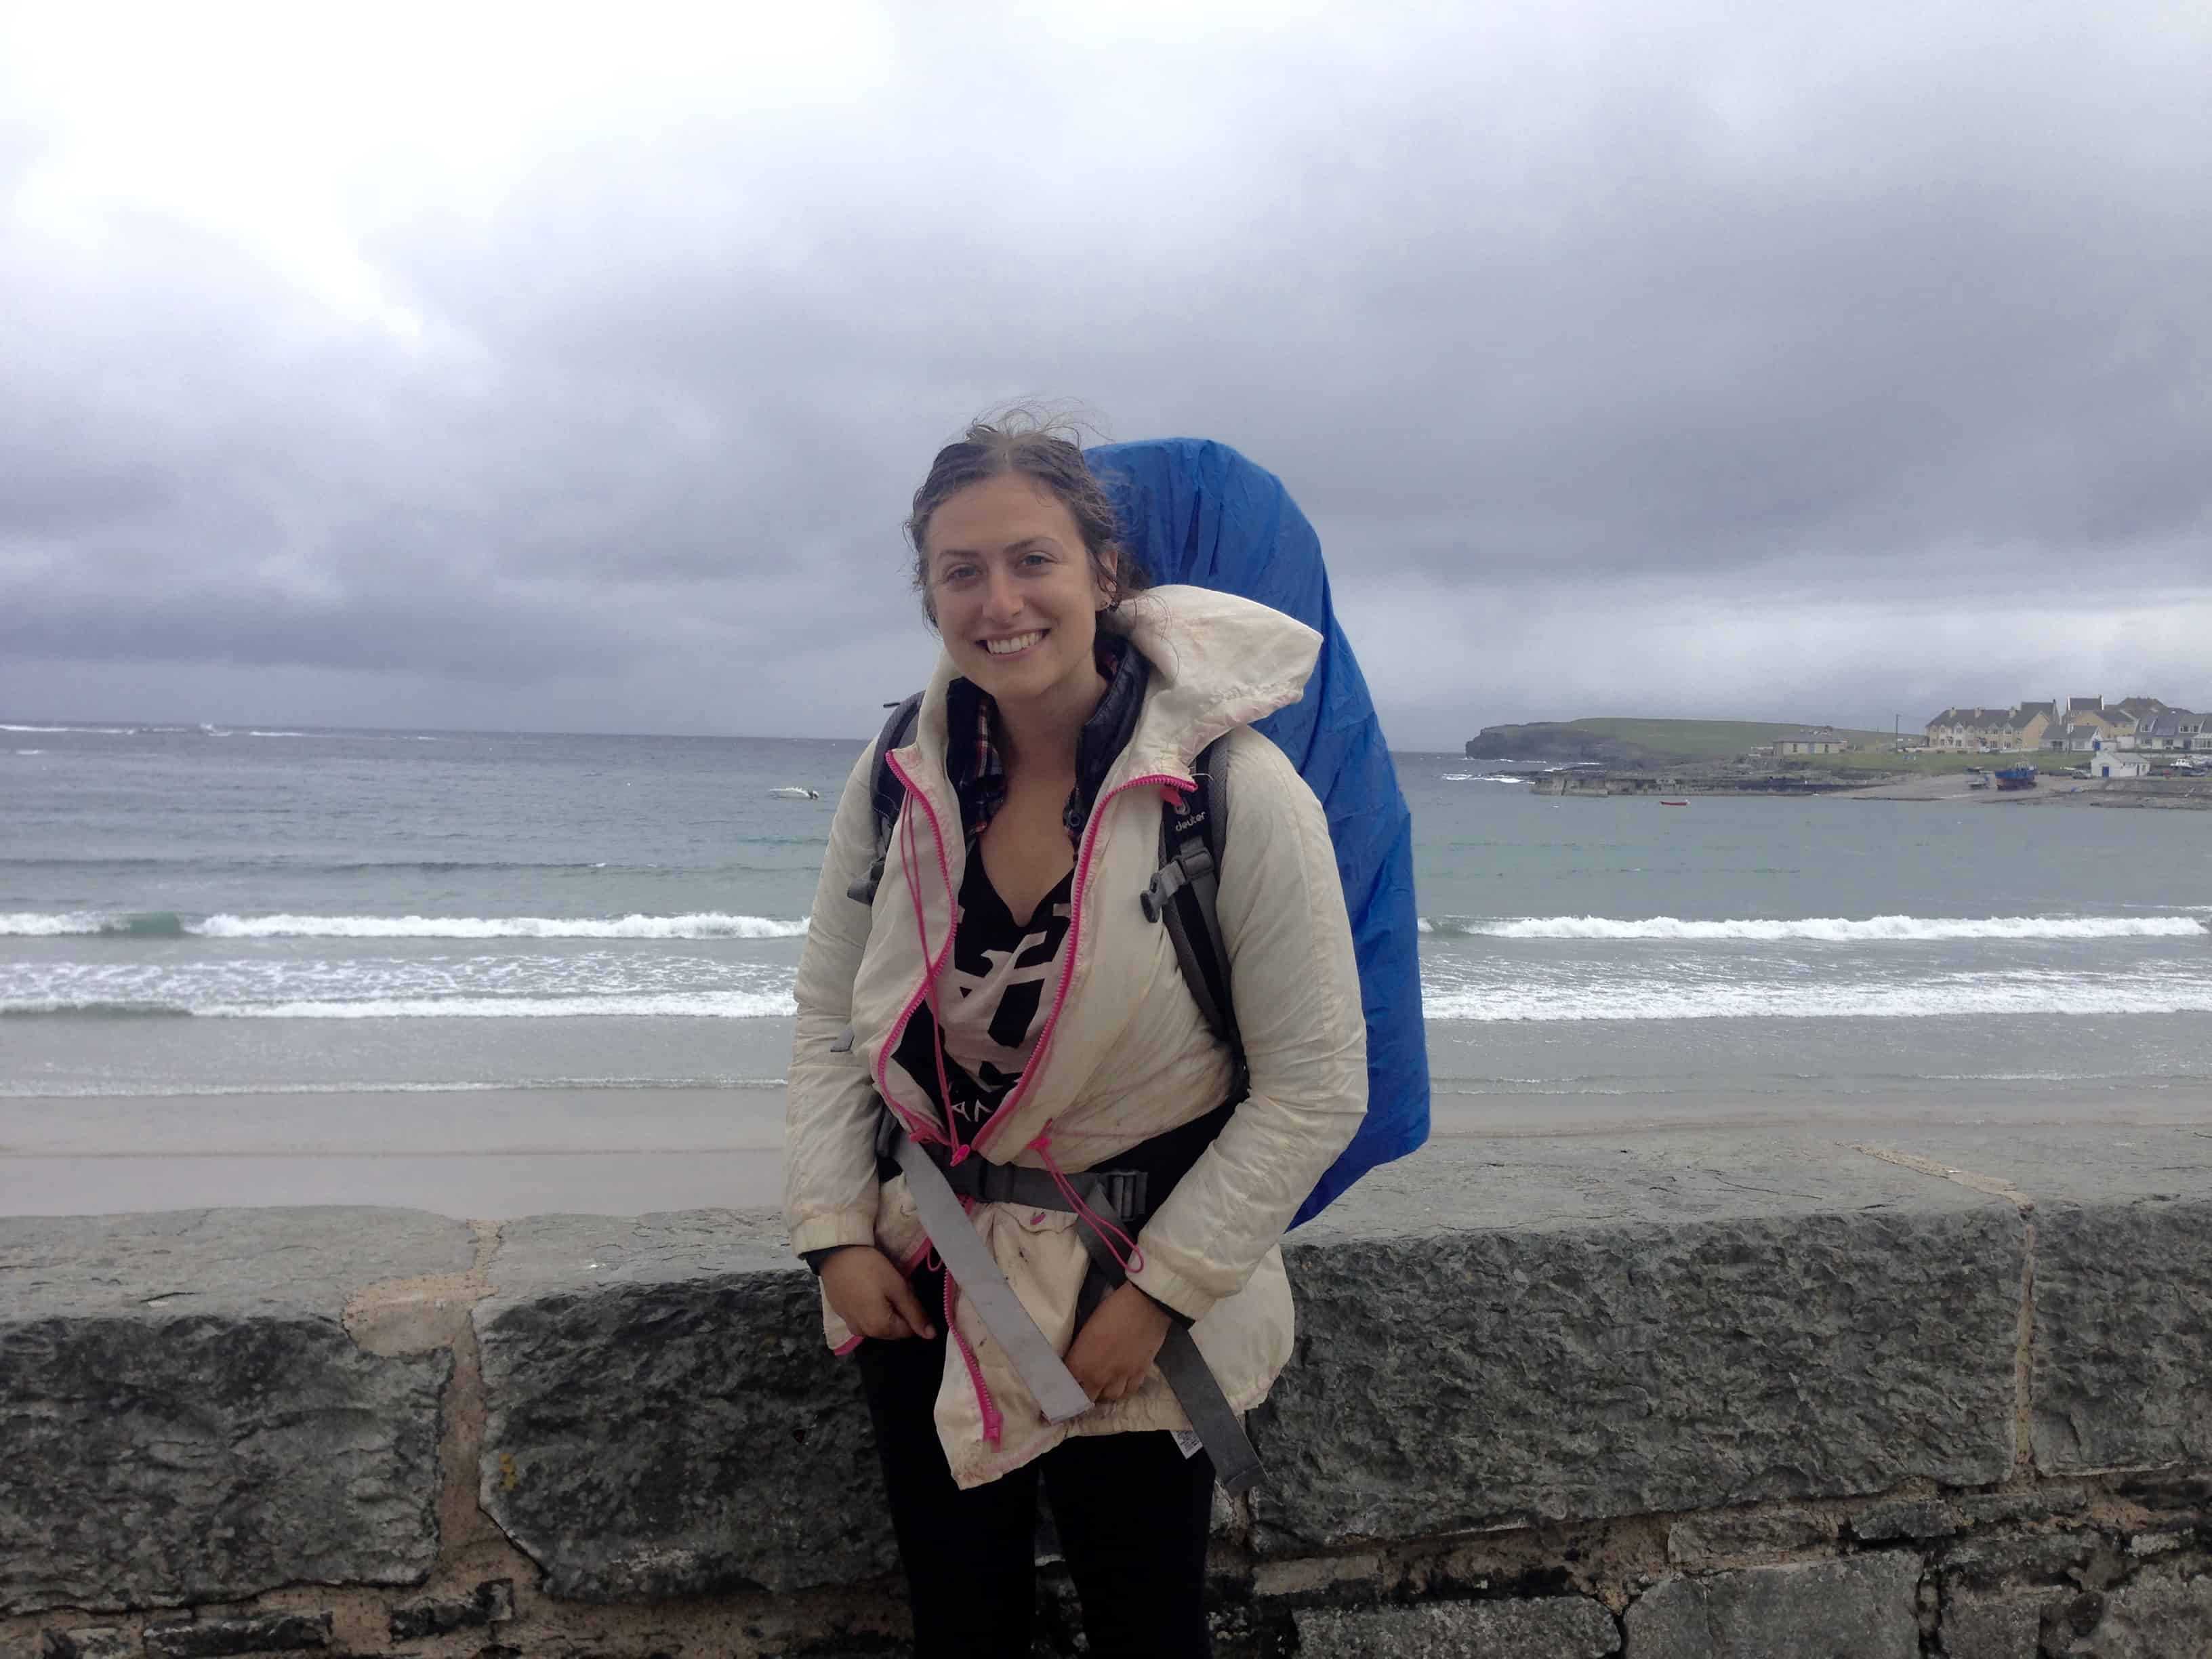 Hitchhiking in Kilkee in Ireland on a cloudy day